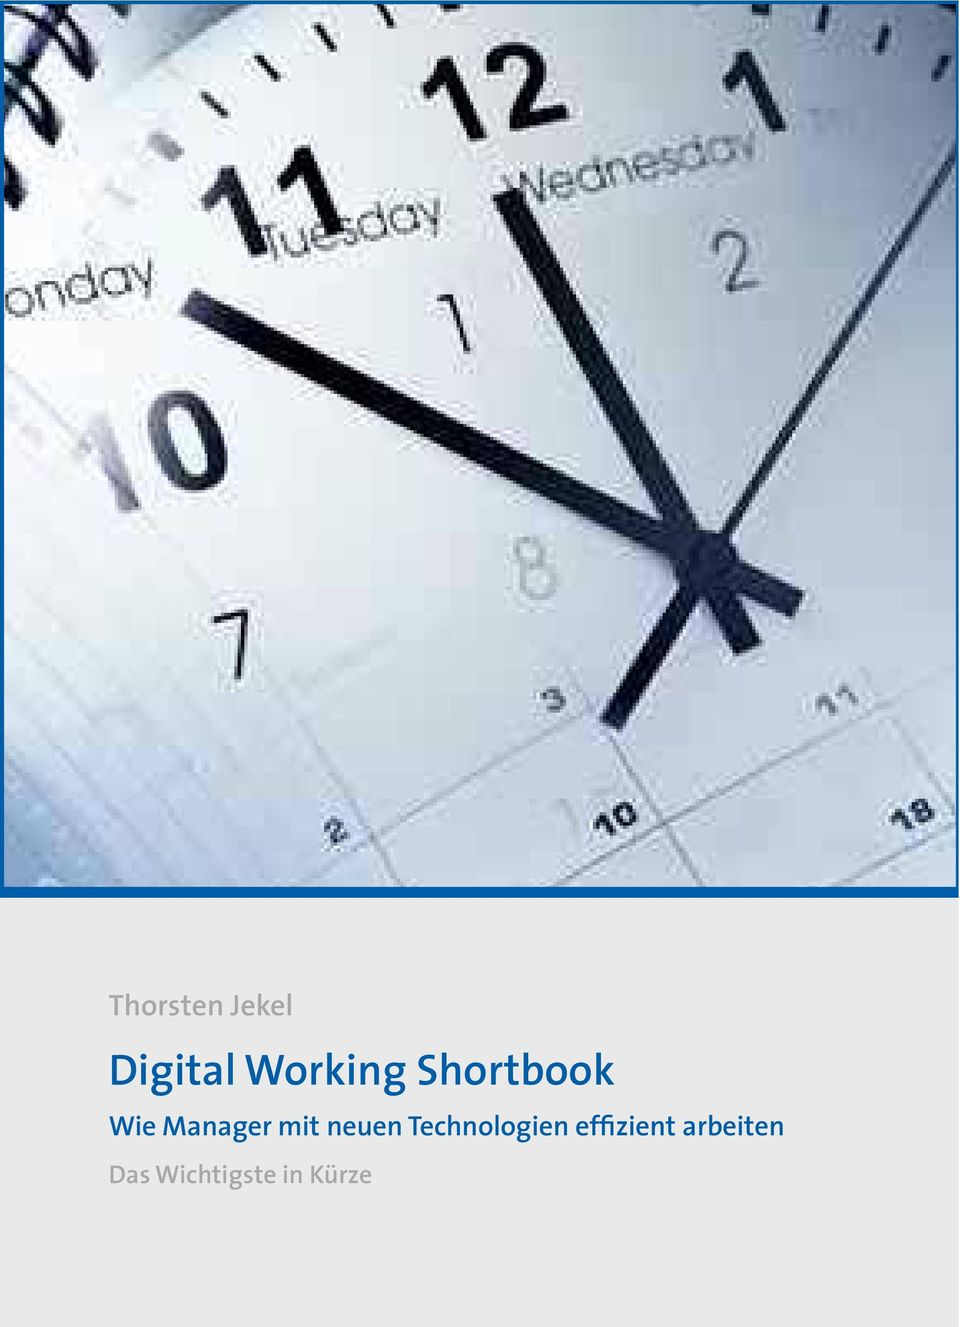 Das Wichtigste in Kürze Digital Working Shortbook Wie Manager